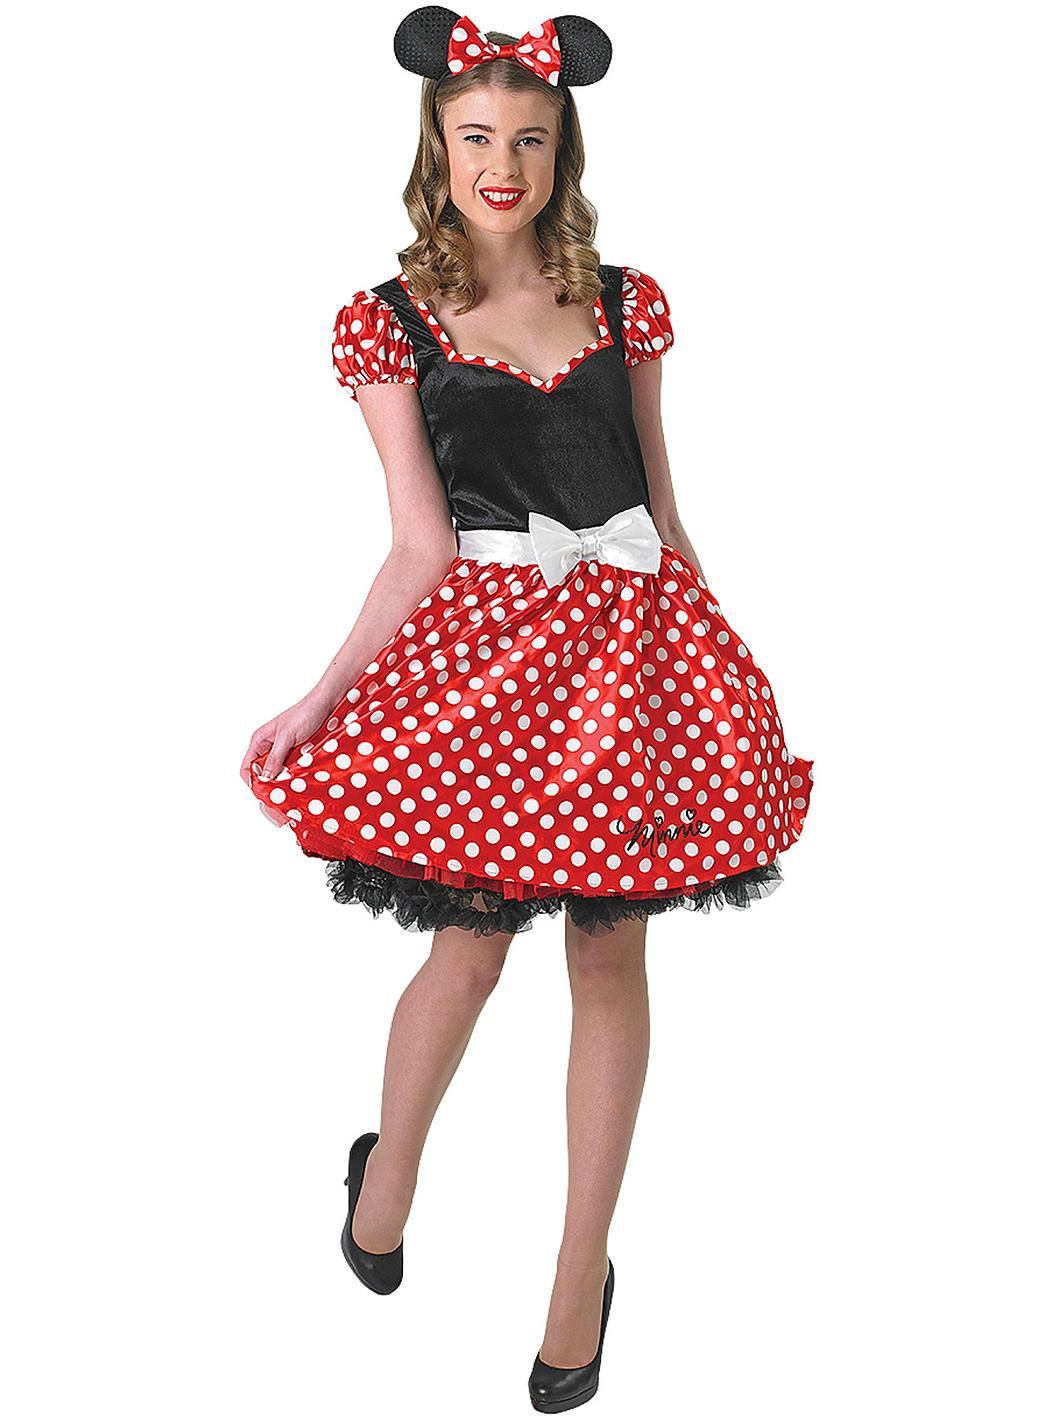 disney sassy minnie mouse adult costume. Black Bedroom Furniture Sets. Home Design Ideas